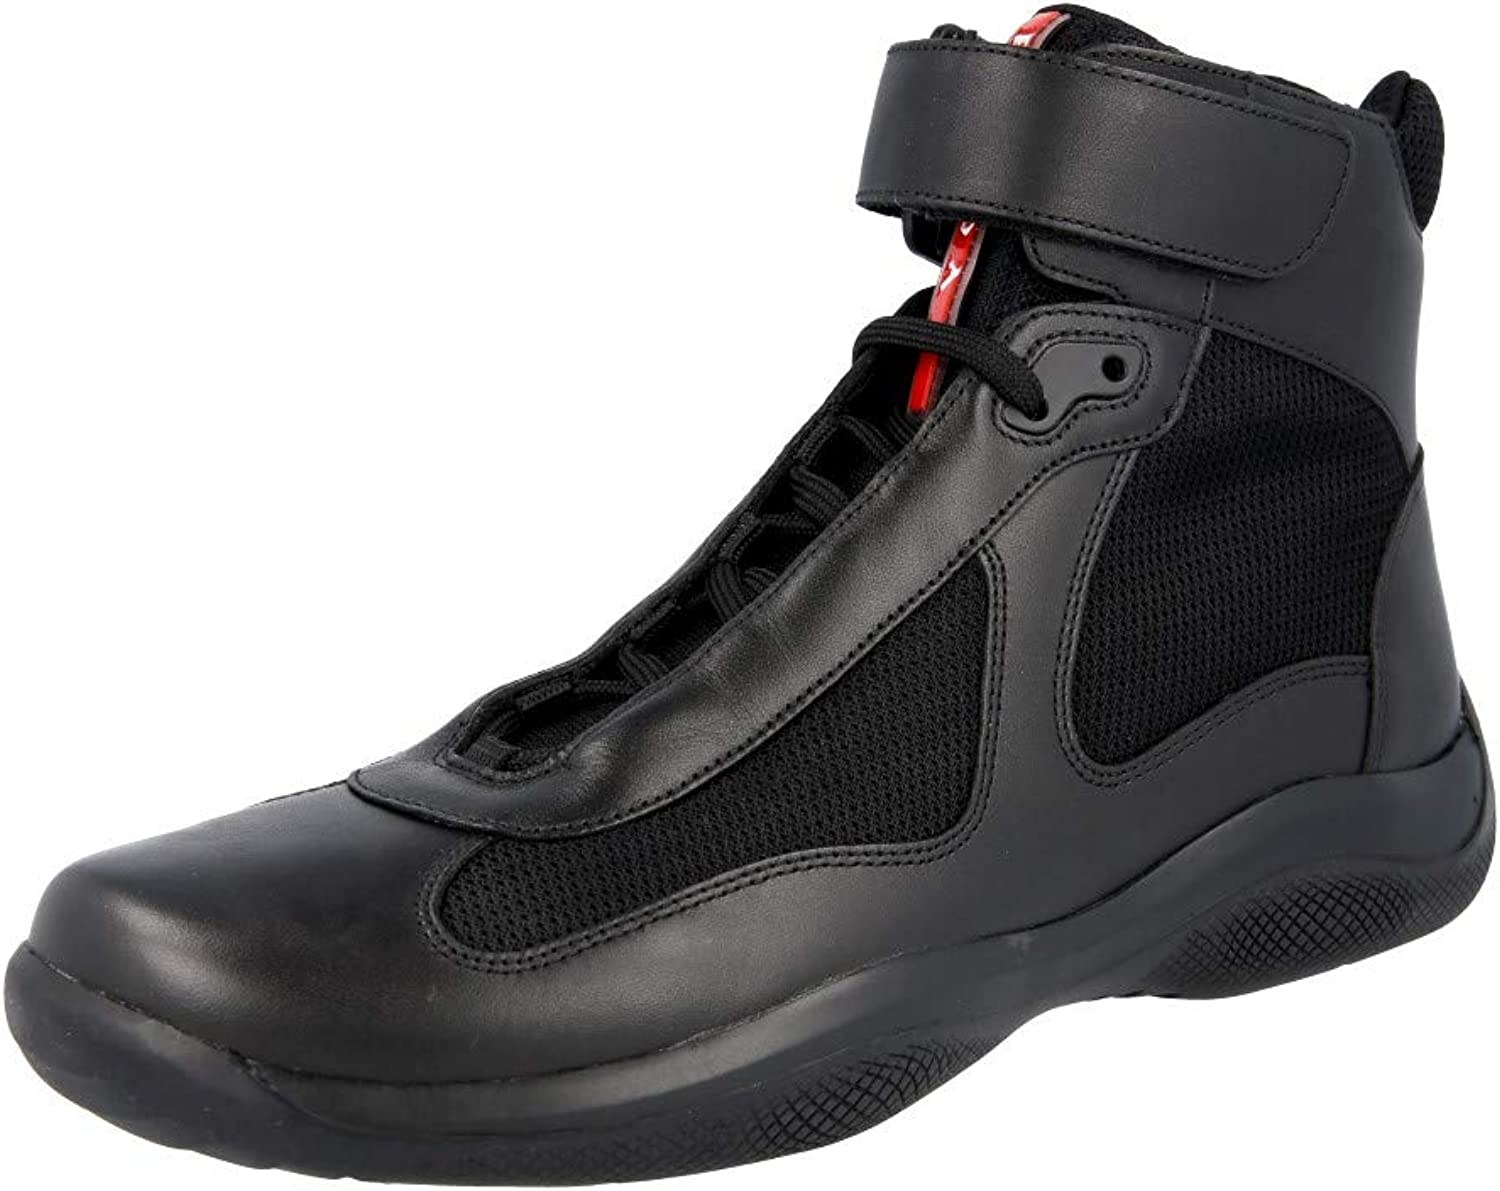 Prada Men's America's Cup High Top Sneaker, Black (black)